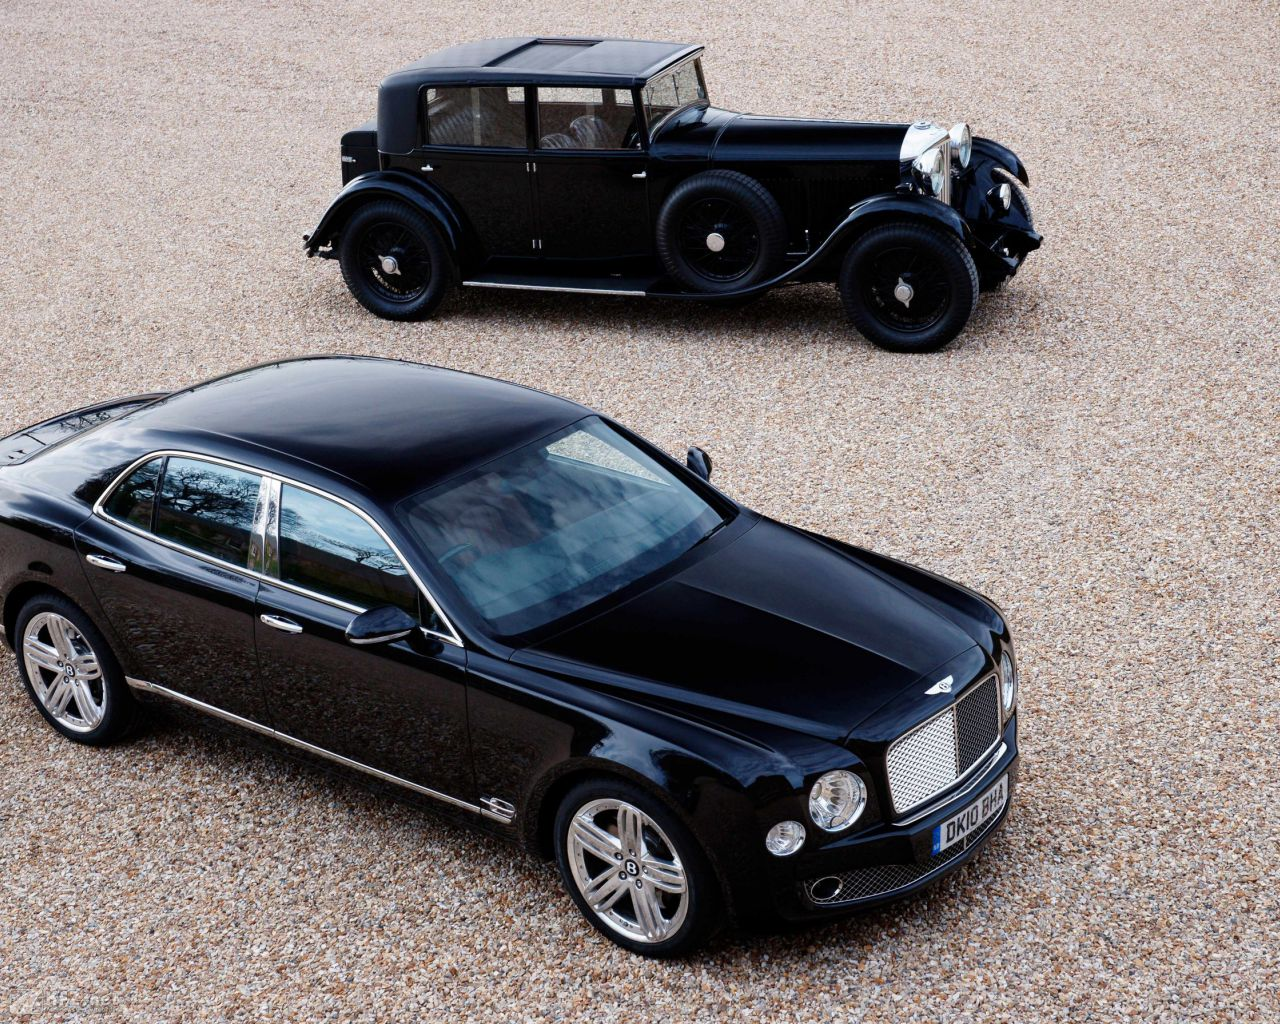 bentley-mulsanne-1280x1024-12